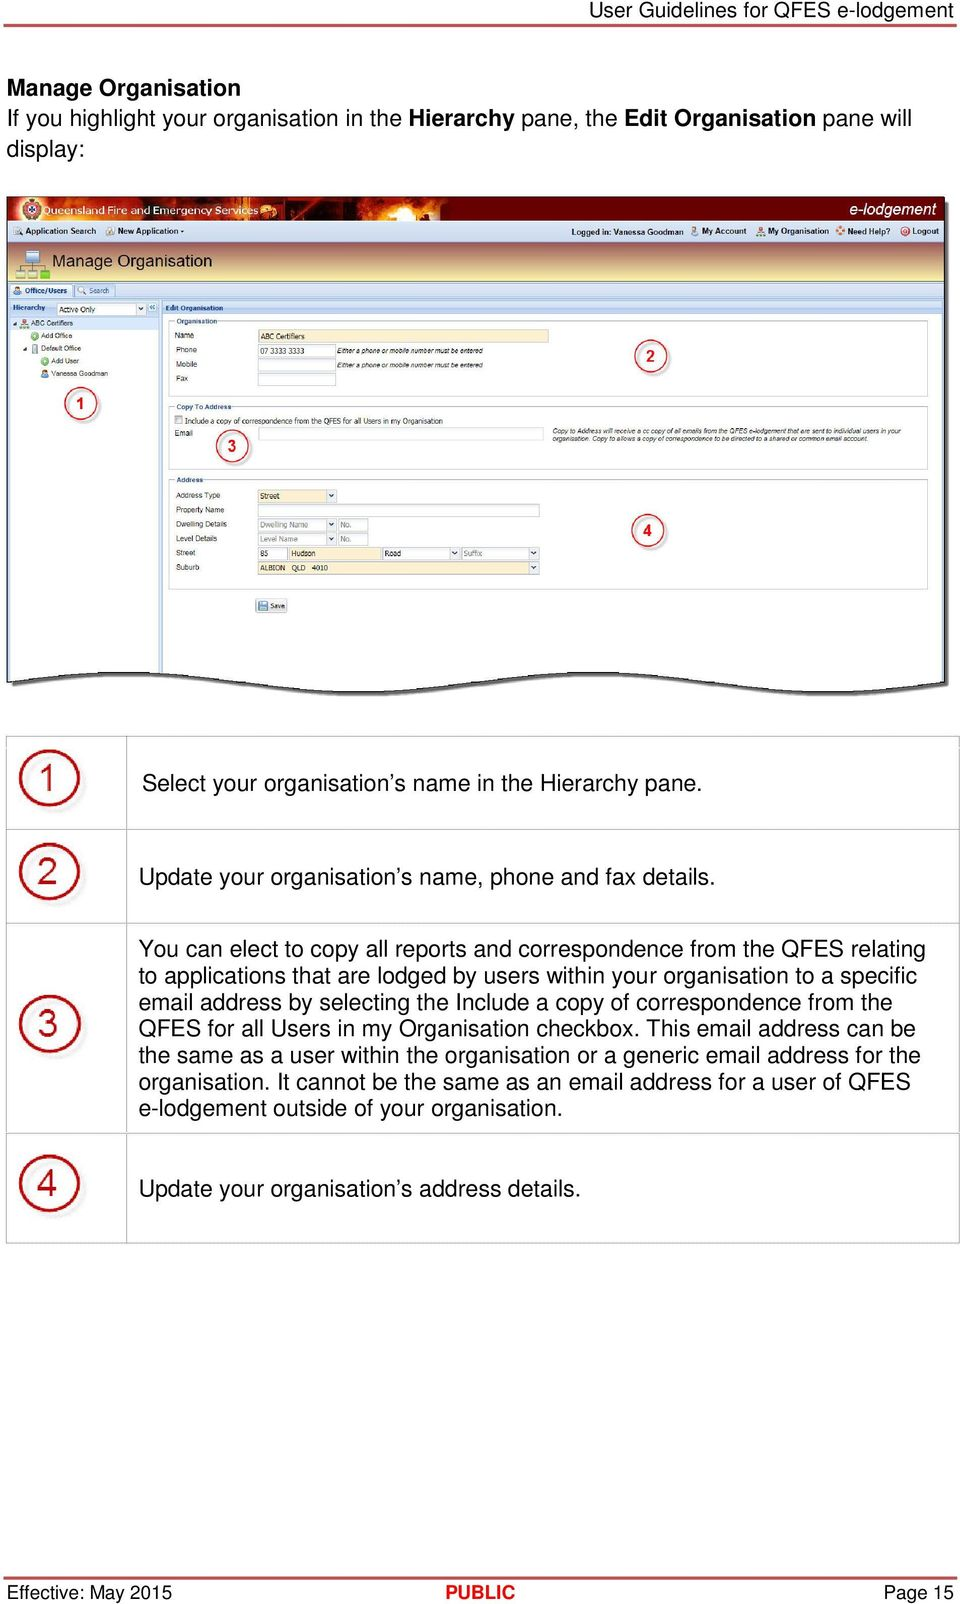 You can elect to copy all reports and correspondence from the QFES relating to applications that are lodged by users within your organisation to a specific email address by selecting the Include a